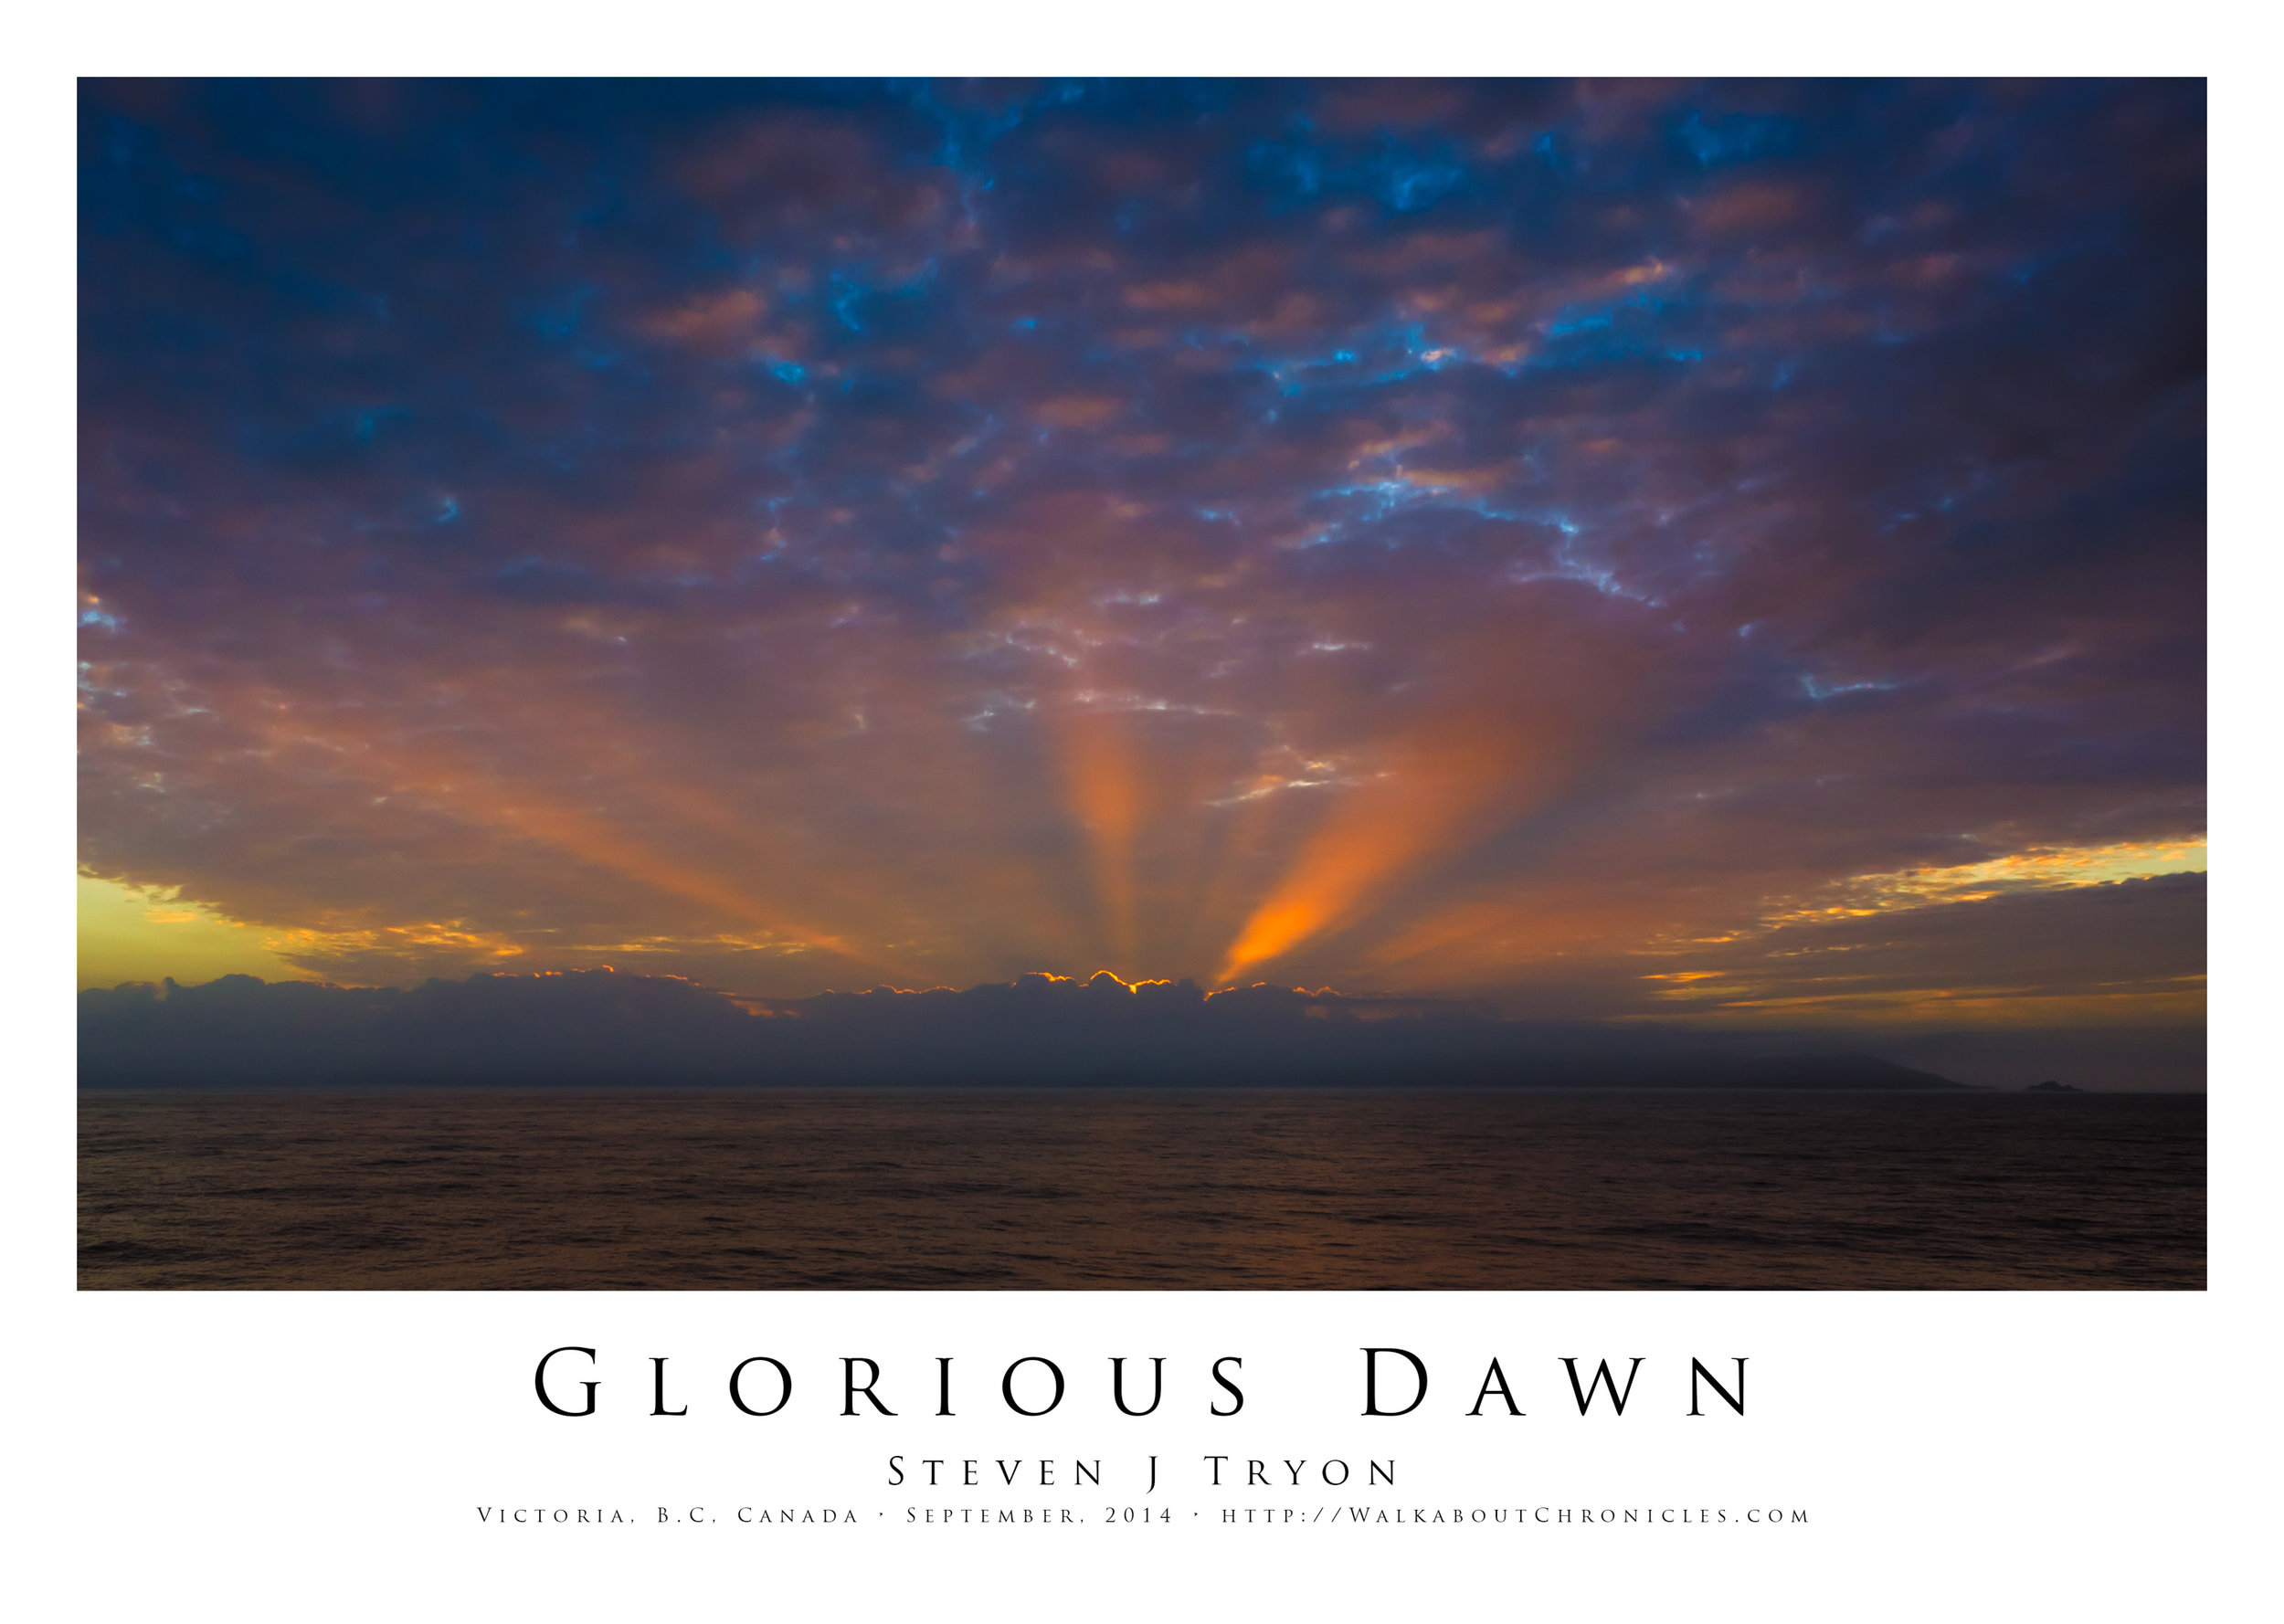 Glorious Dawn